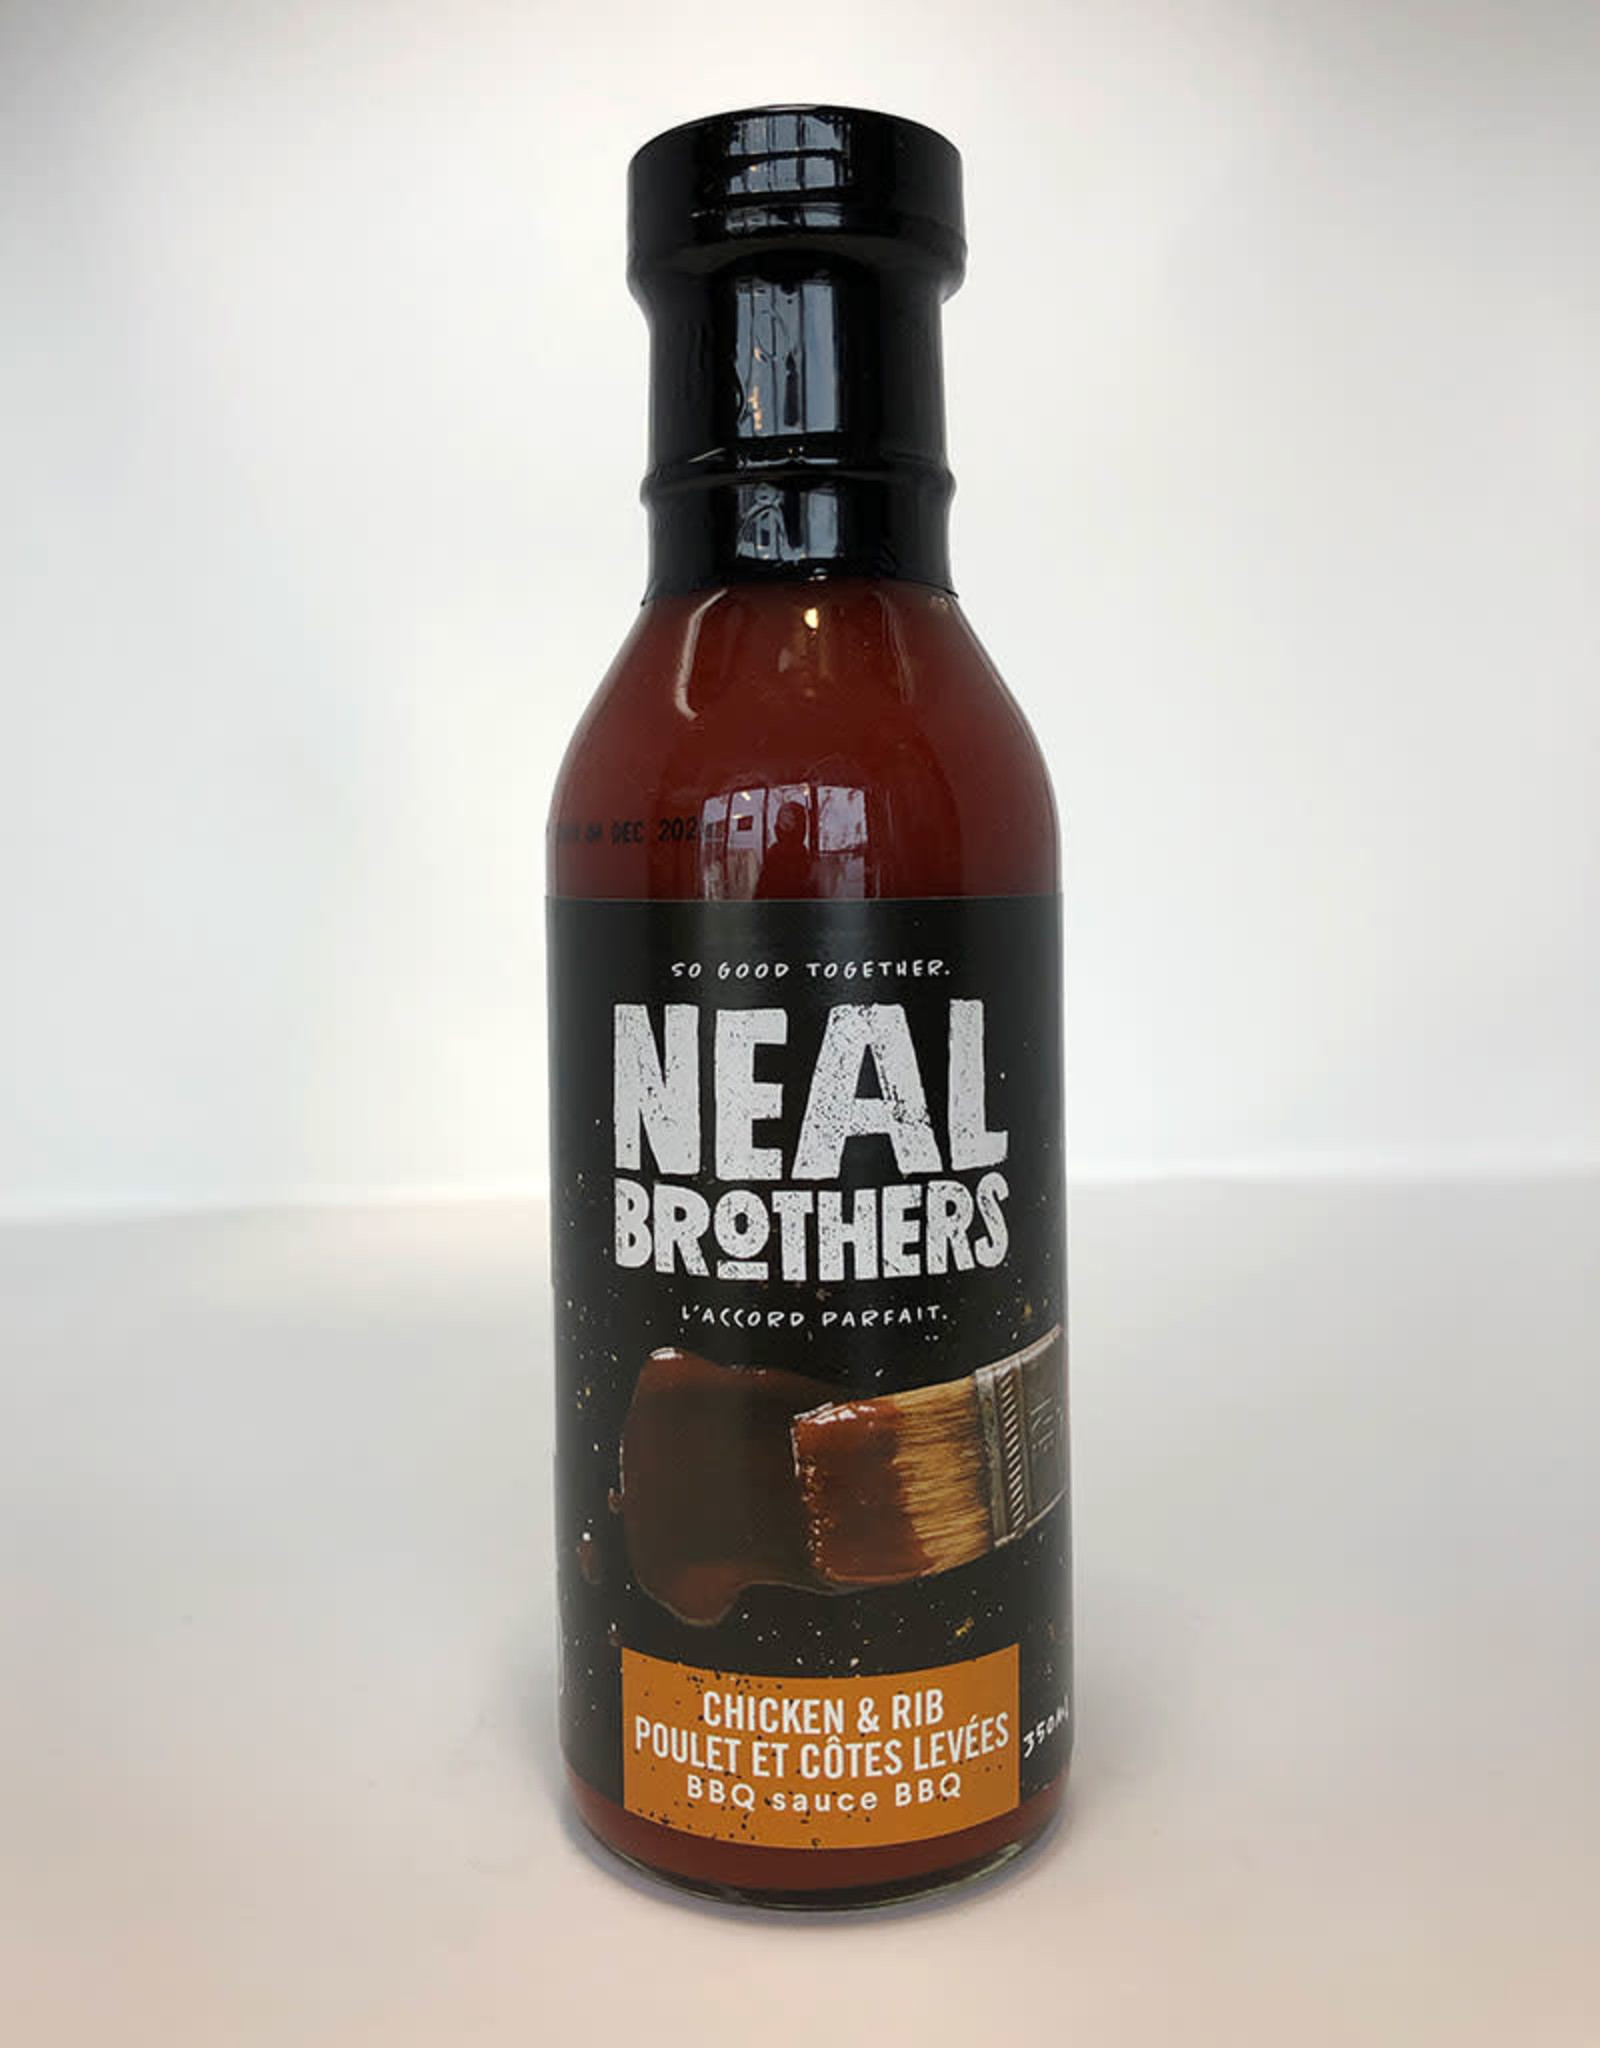 Neal Brothers Neal Brothers - All Natural BBQ Sauce, Chicken & Rib (350ml)